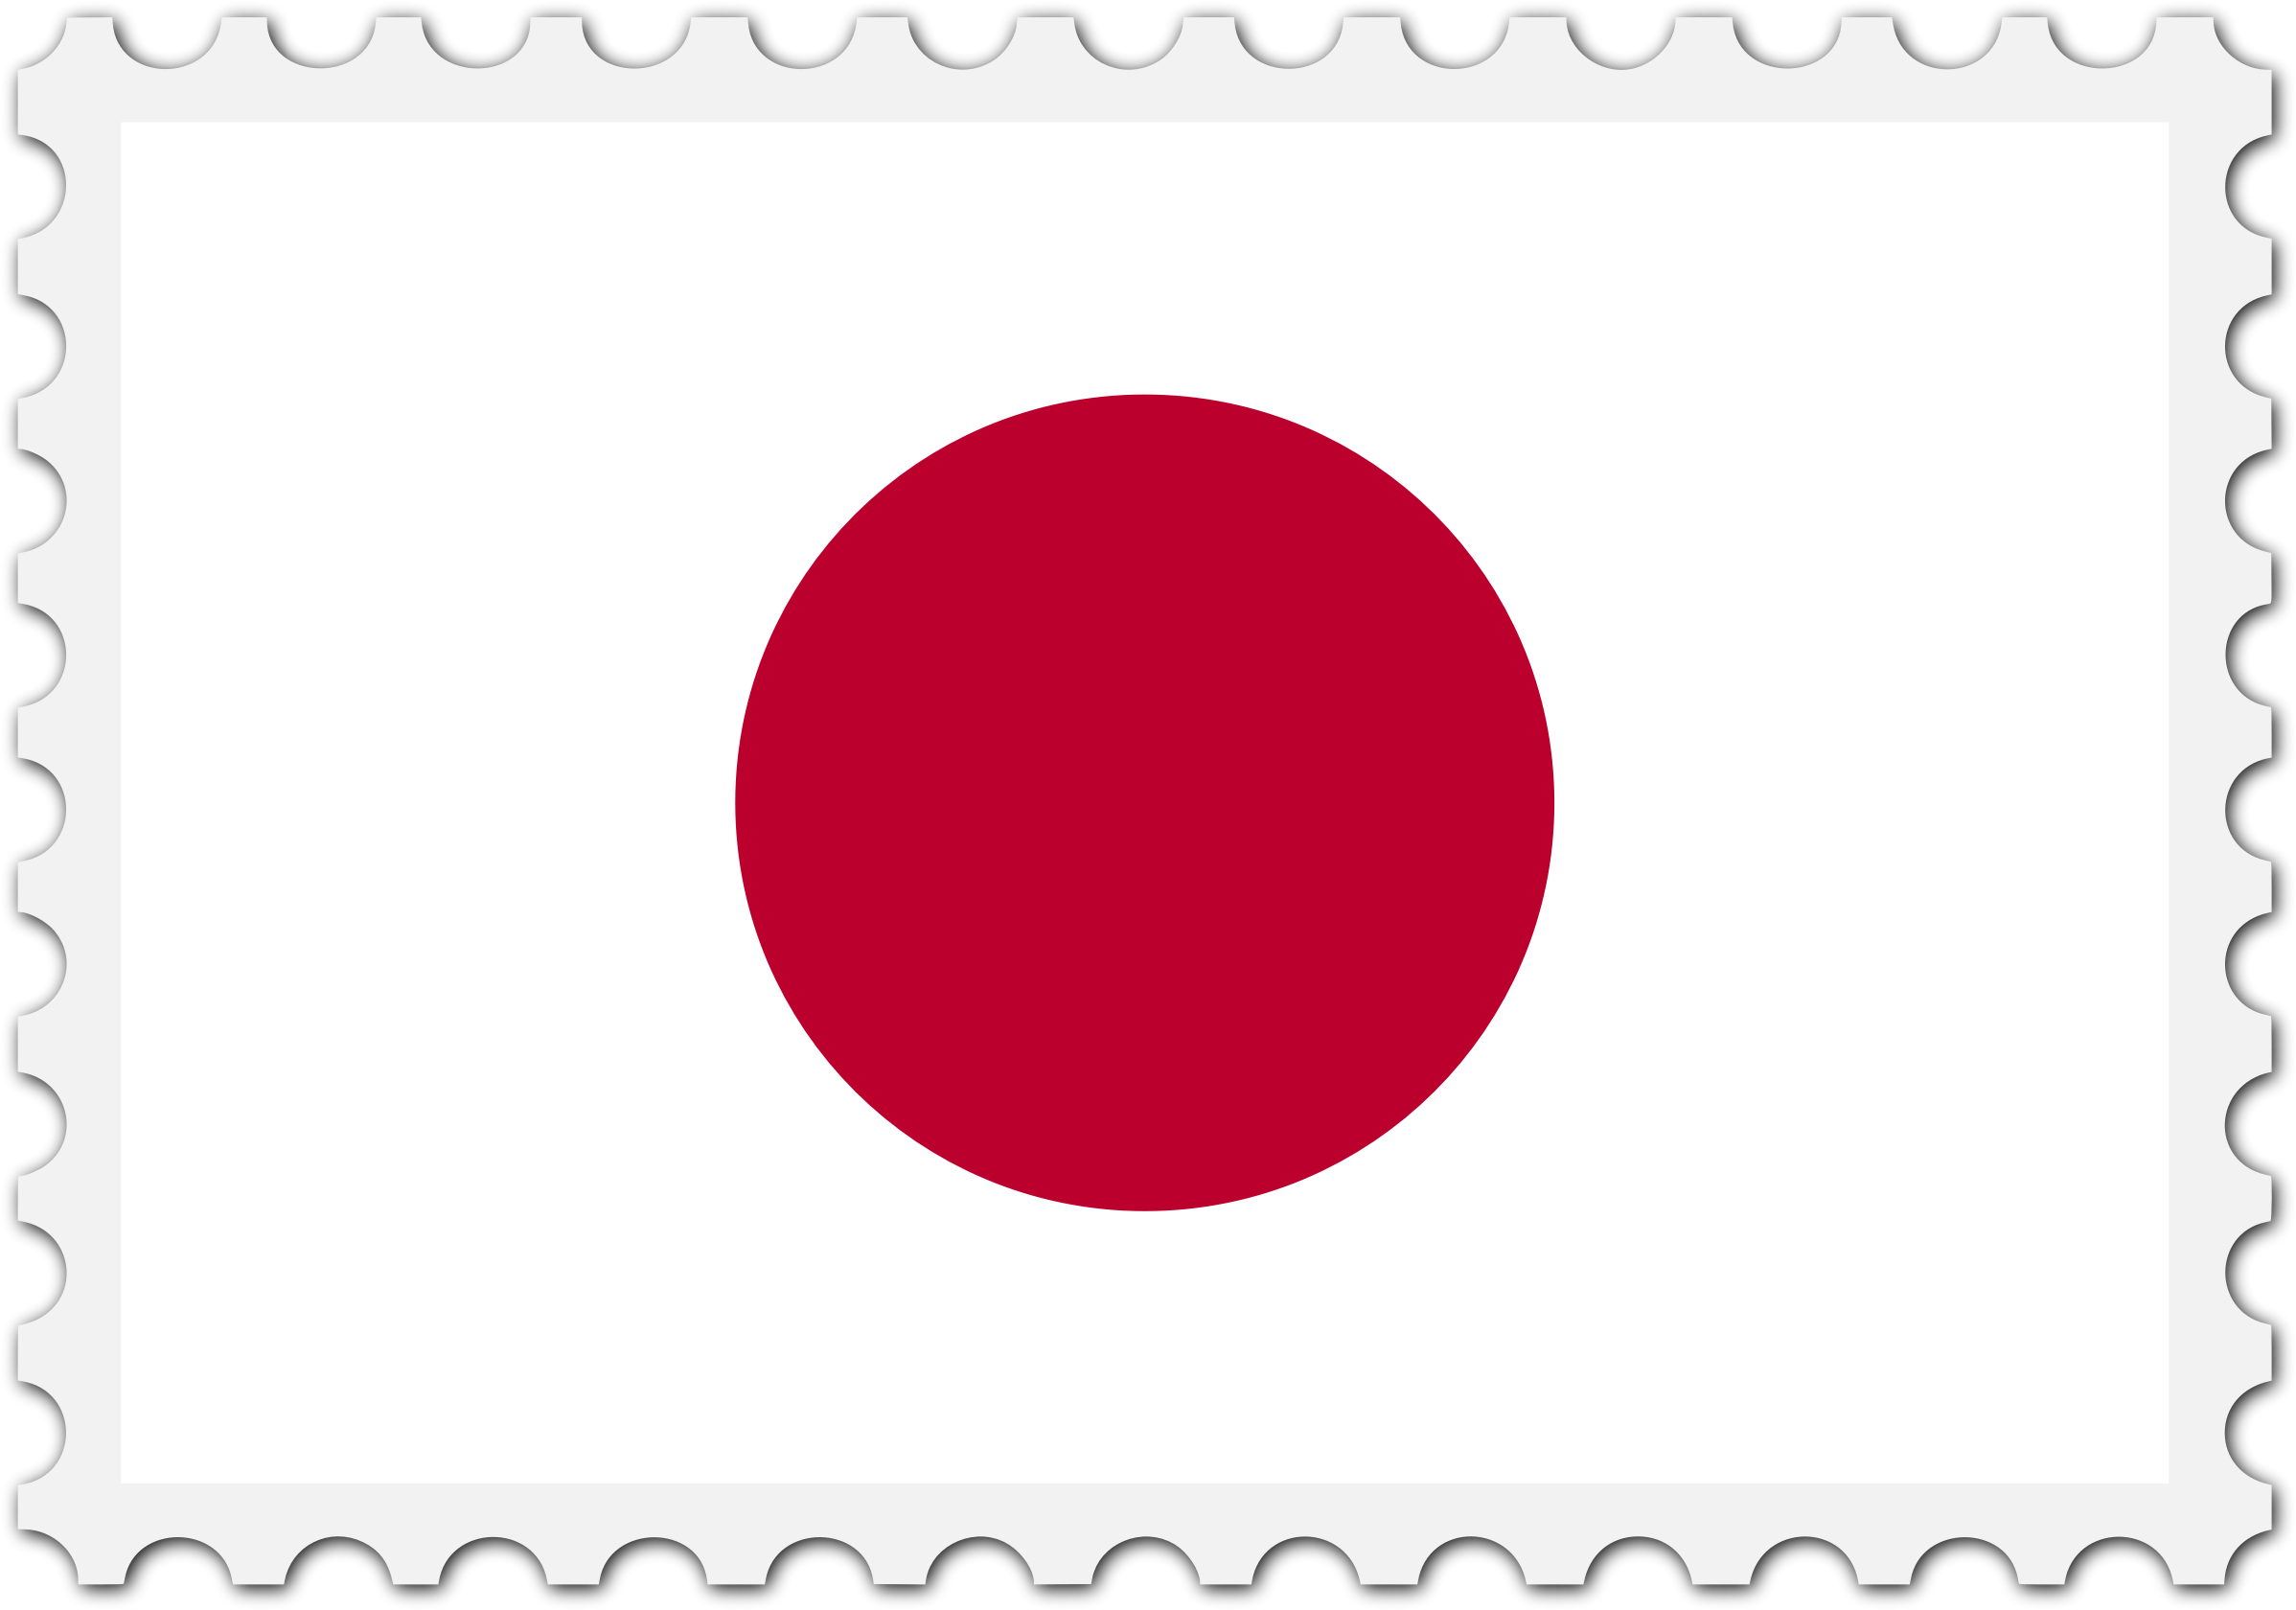 Japan flag stamp by Firkin